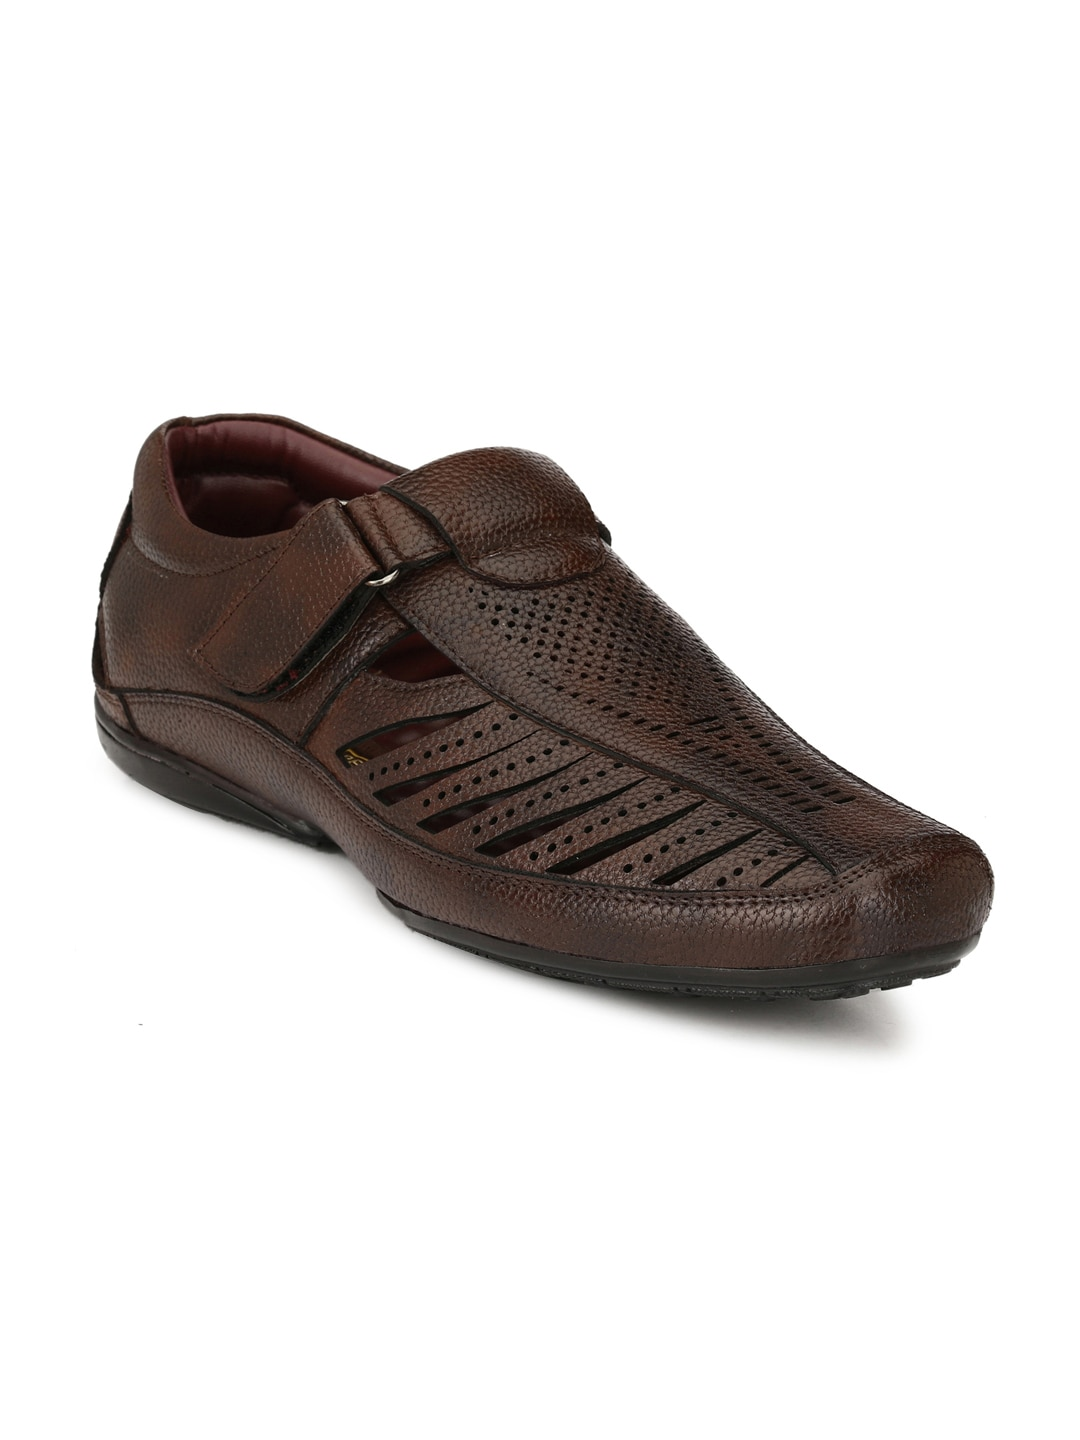 841ceeebd6e Sandals - Buy Sandals Online for Men   Women in India